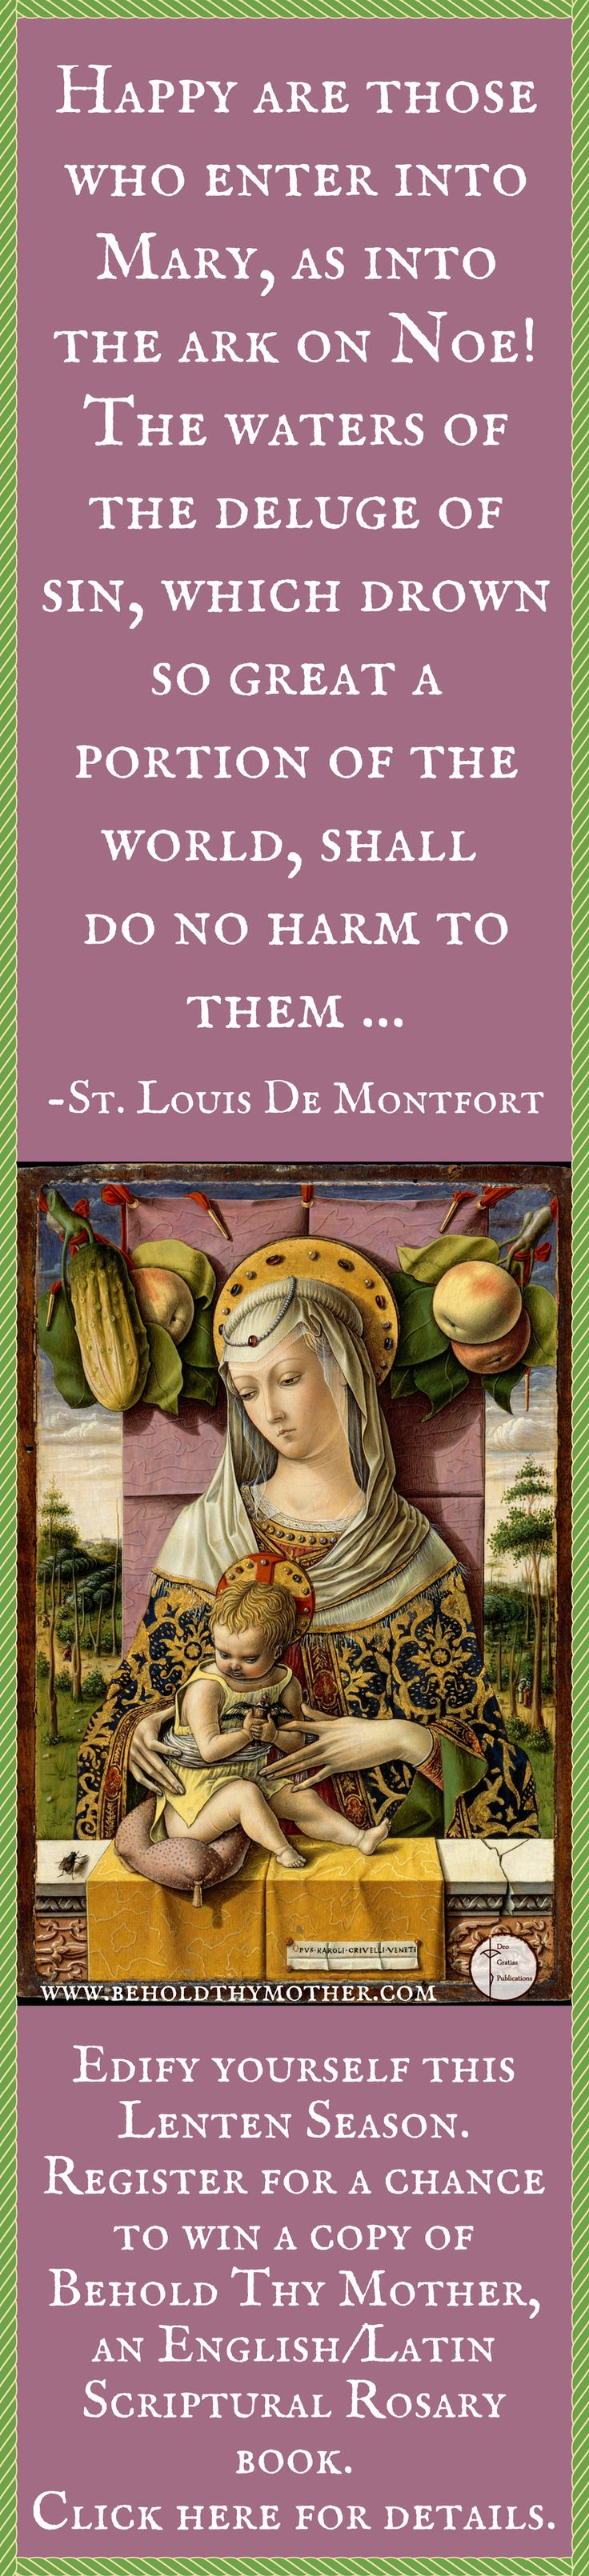 """Beautiful painting by Carlo Crivelli with St. Louis De Montfort quote. Register for a chance to win a copy of """"Behold Thy Mother"""" an English/Latin Scriptural Rosary book."""